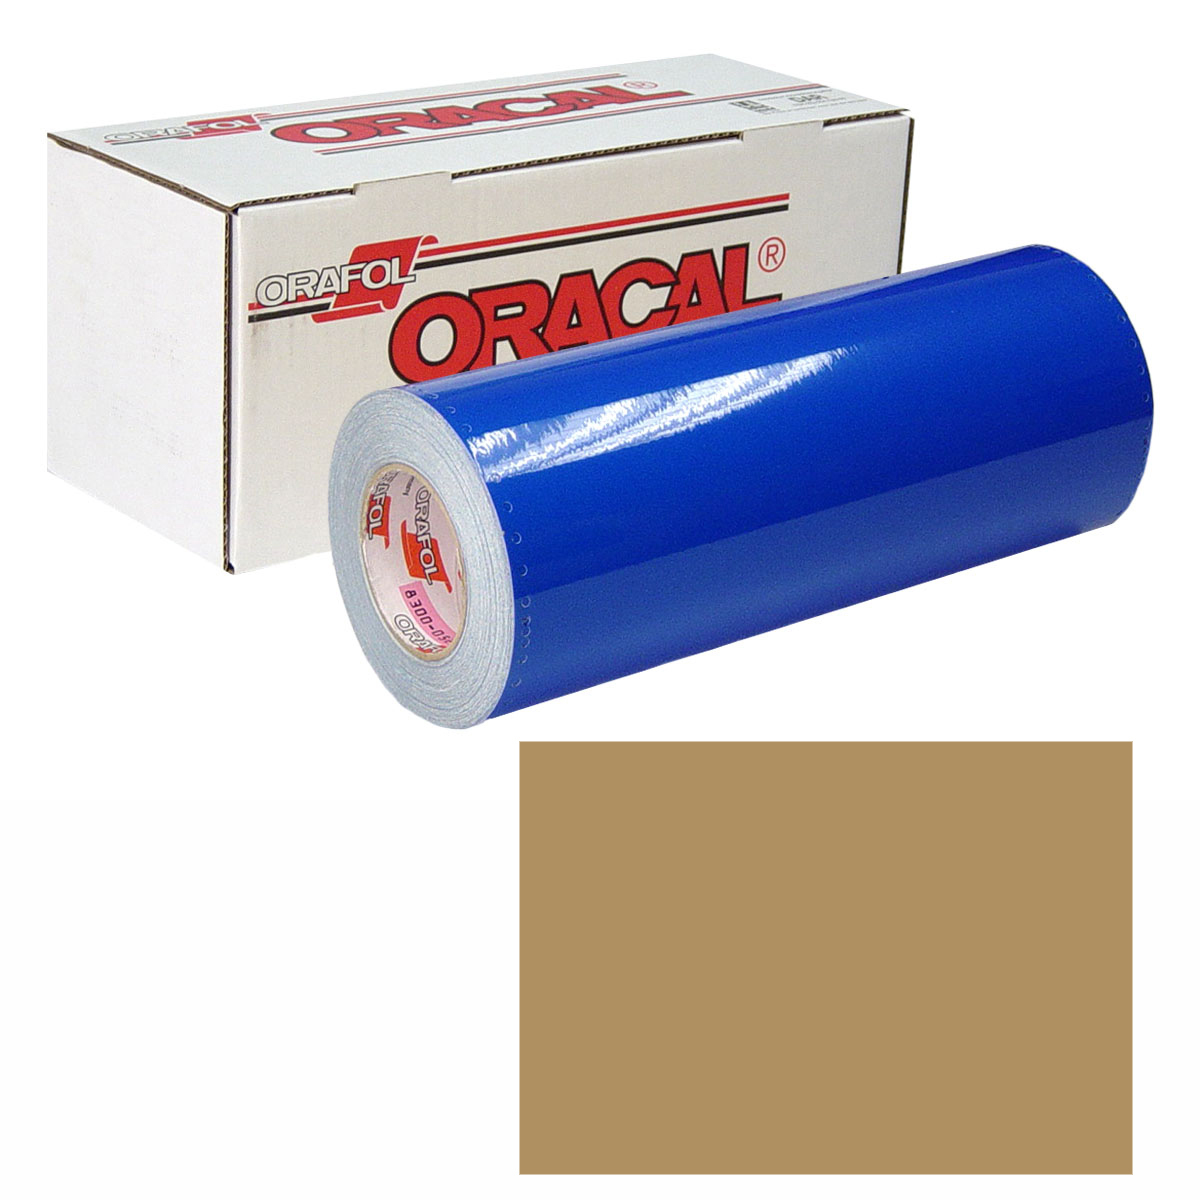 ORACAL 631 Unp 24In X 50Yd 091 Gold Met